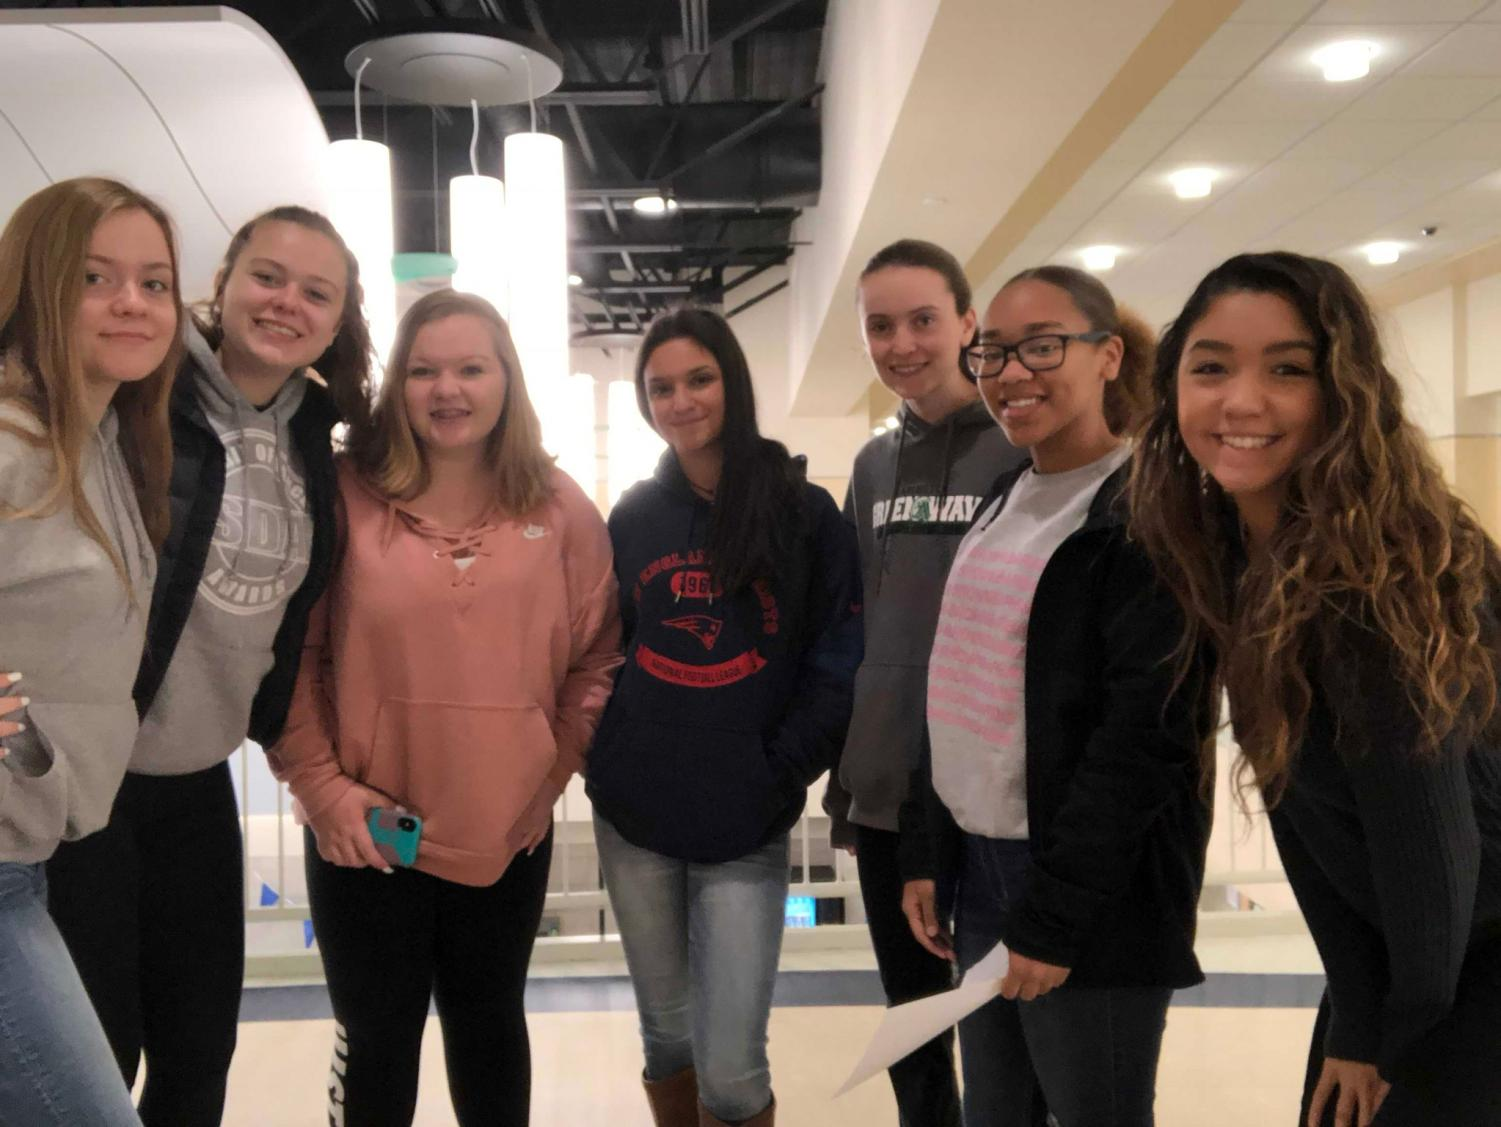 Ella Hughes, Rachel Barrett, Caitlin Malone, Ava Hajjar, Lauren Nelligan, Daisy Dossantos-Ribeiro, and Criselda Burke at the New Student Breakfast